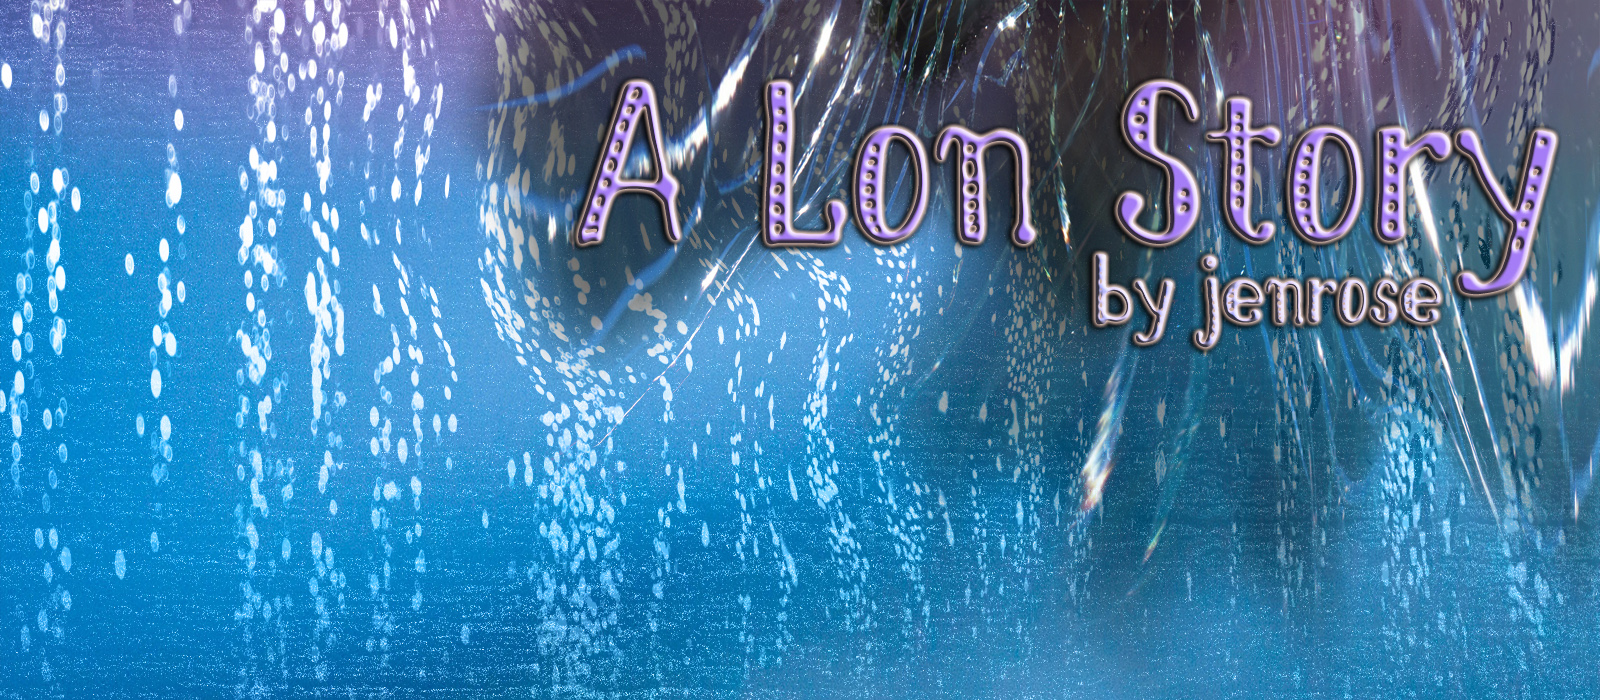 """An amorphous aqua, teal and blue blur at the bottom shades up to silver threads, hair and a purple blur. the words """"A Lon Story by Jenrose"""" overlay the image."""